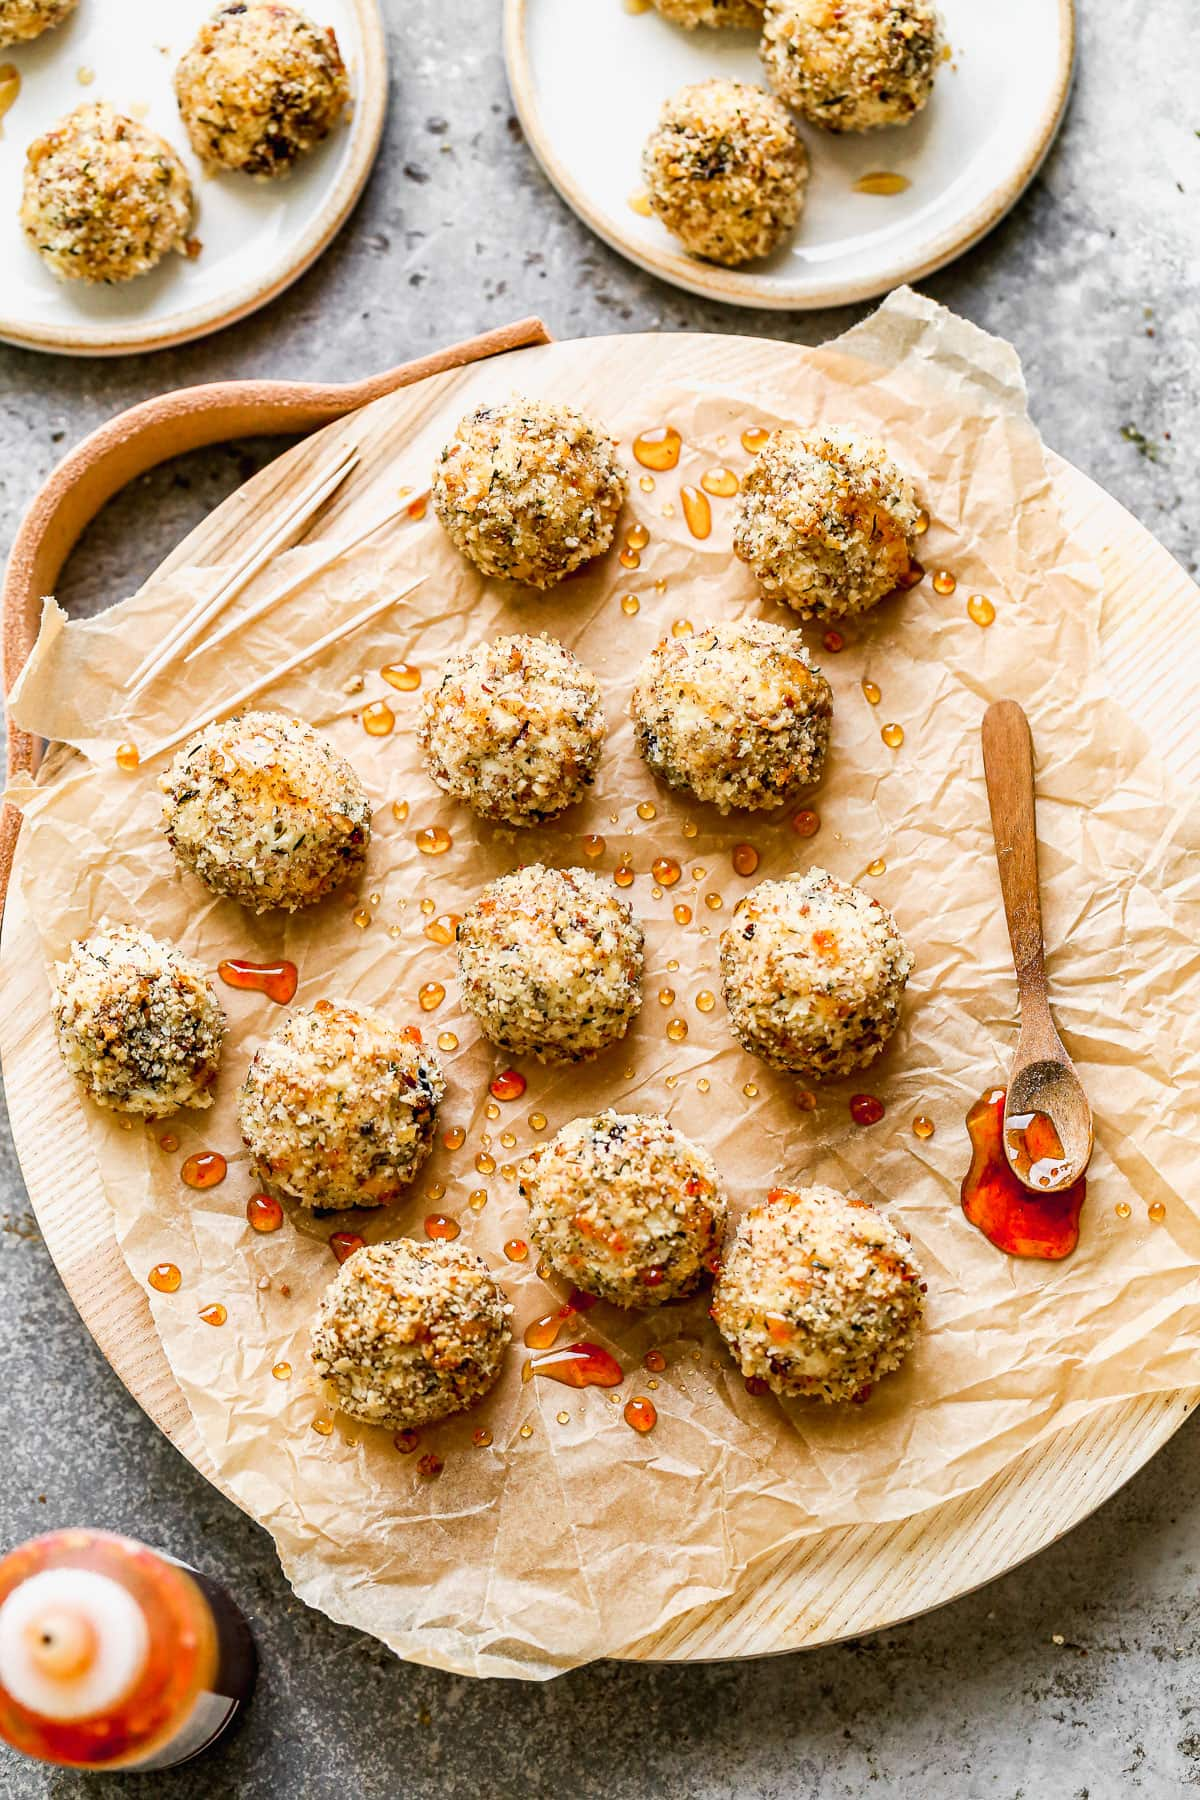 Goat cheese balls on a serving tray